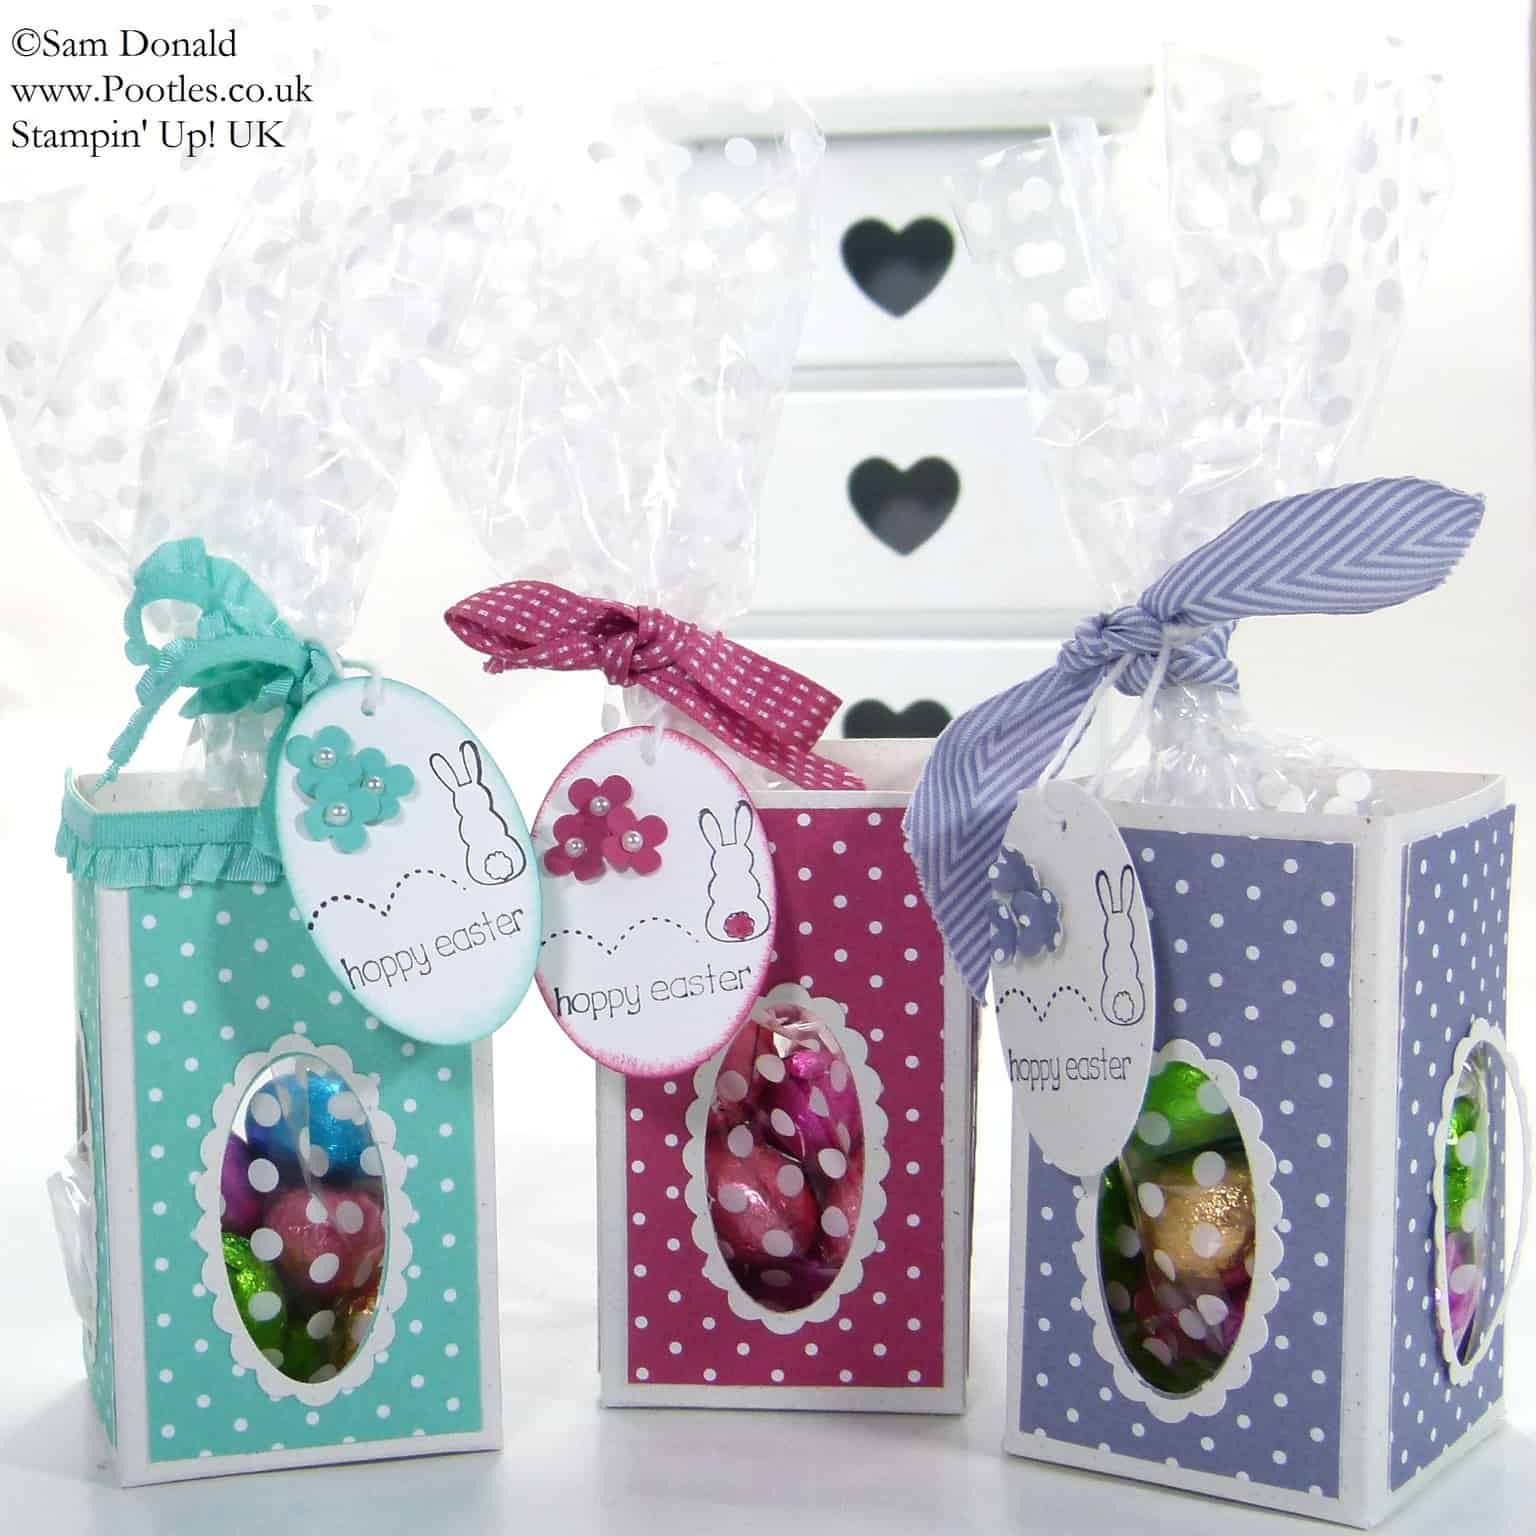 POOTLES Stampin' Up! UK Easter Window Treat Boxes 3